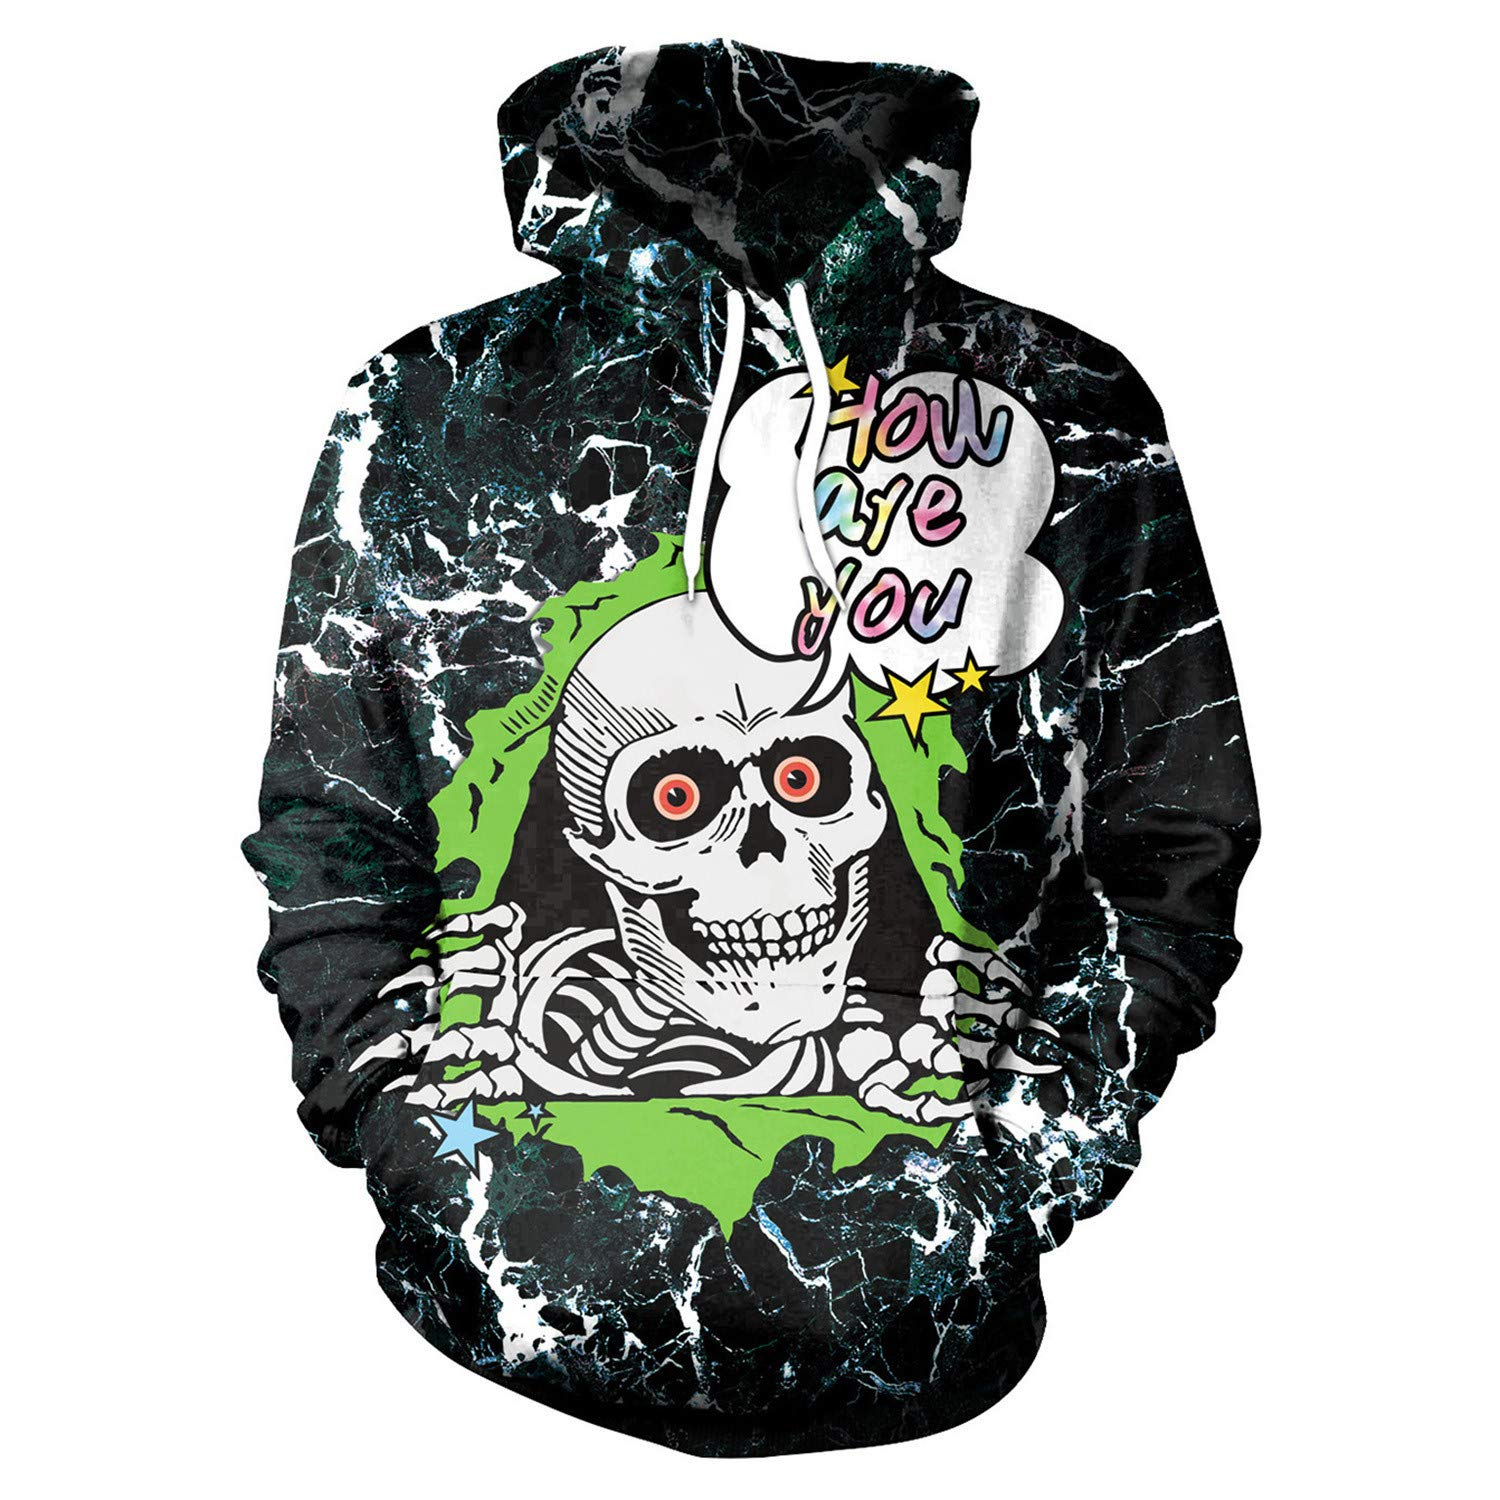 Mrsrui 3D Print Galaxy Hooded Shirts with Pockets for Men,Women, Teen by Mrsrui